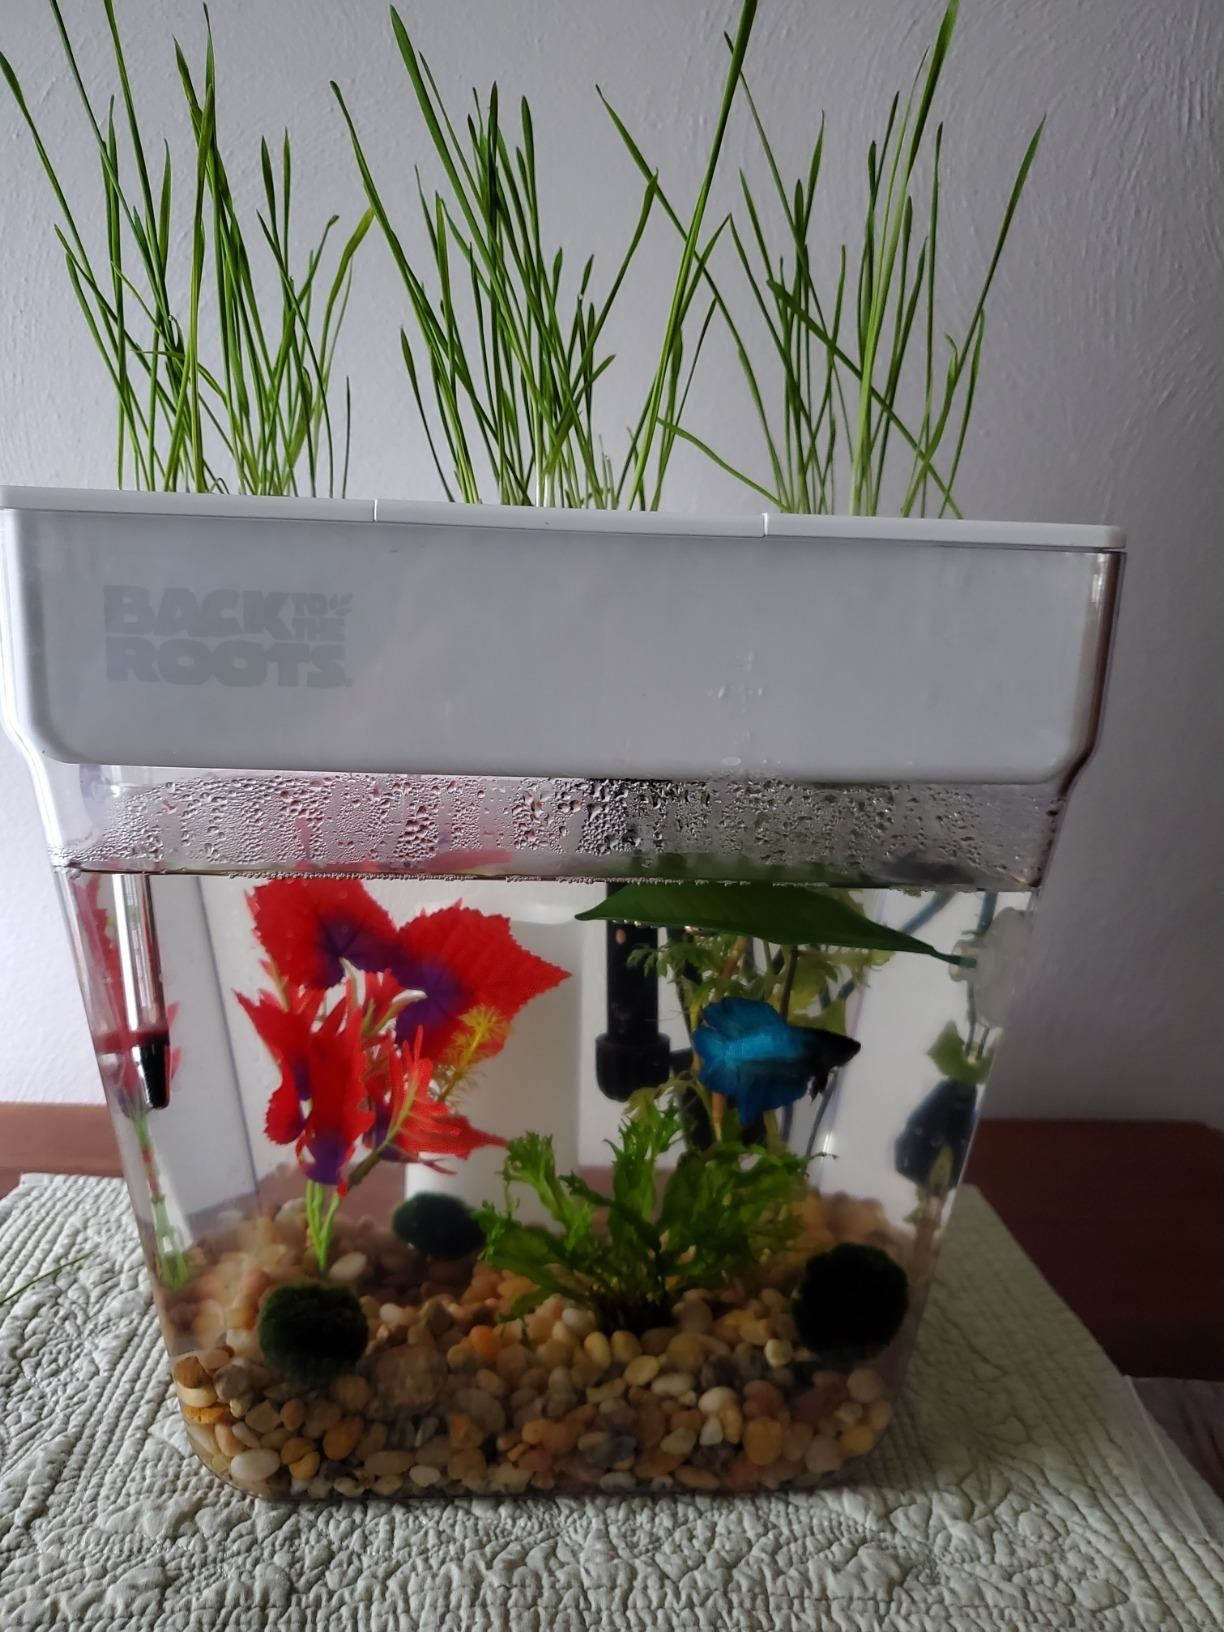 Reviewer image of self-cleaning water garden